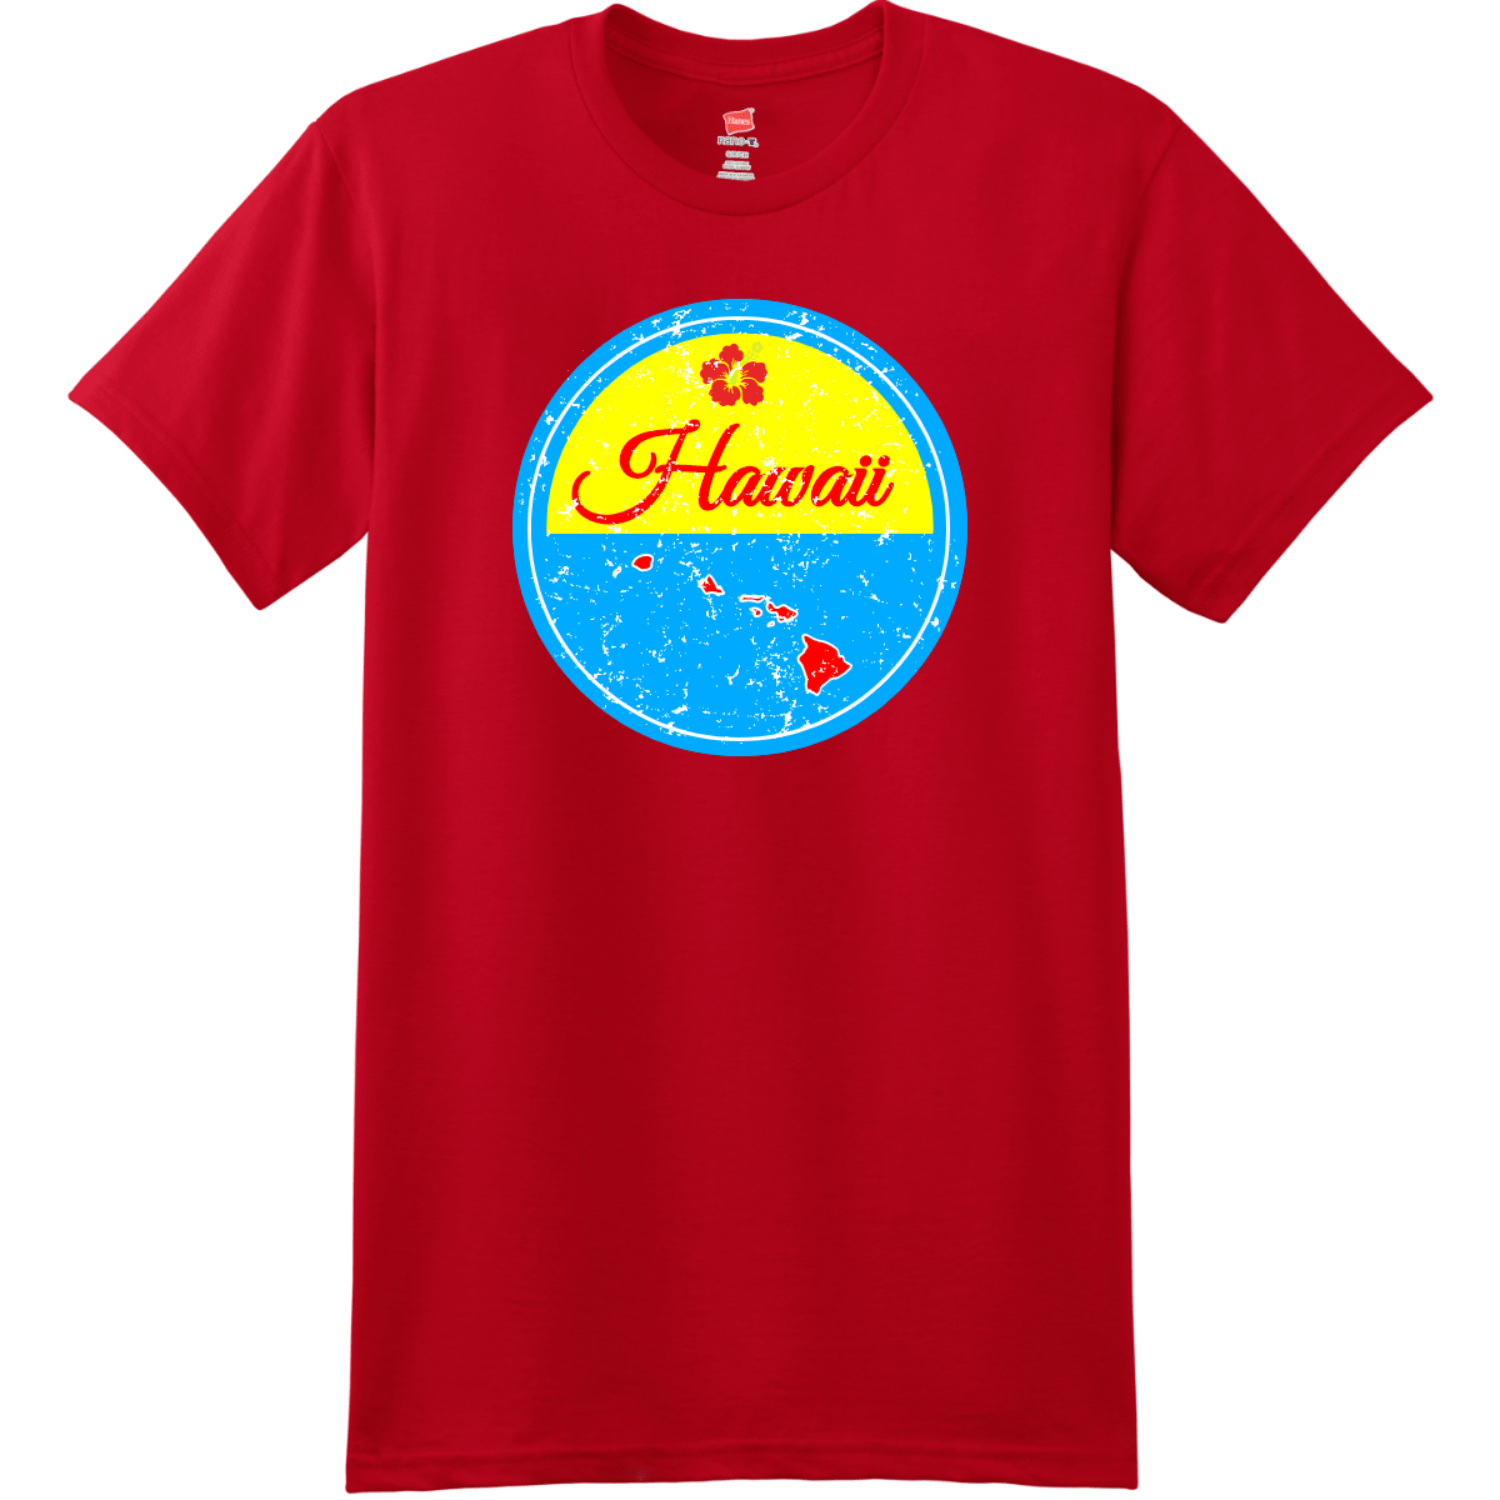 Hawaii Islands State Retro T Shirt Deep Red Hanes Nano 4980 Ringspun Cotton T Shirt